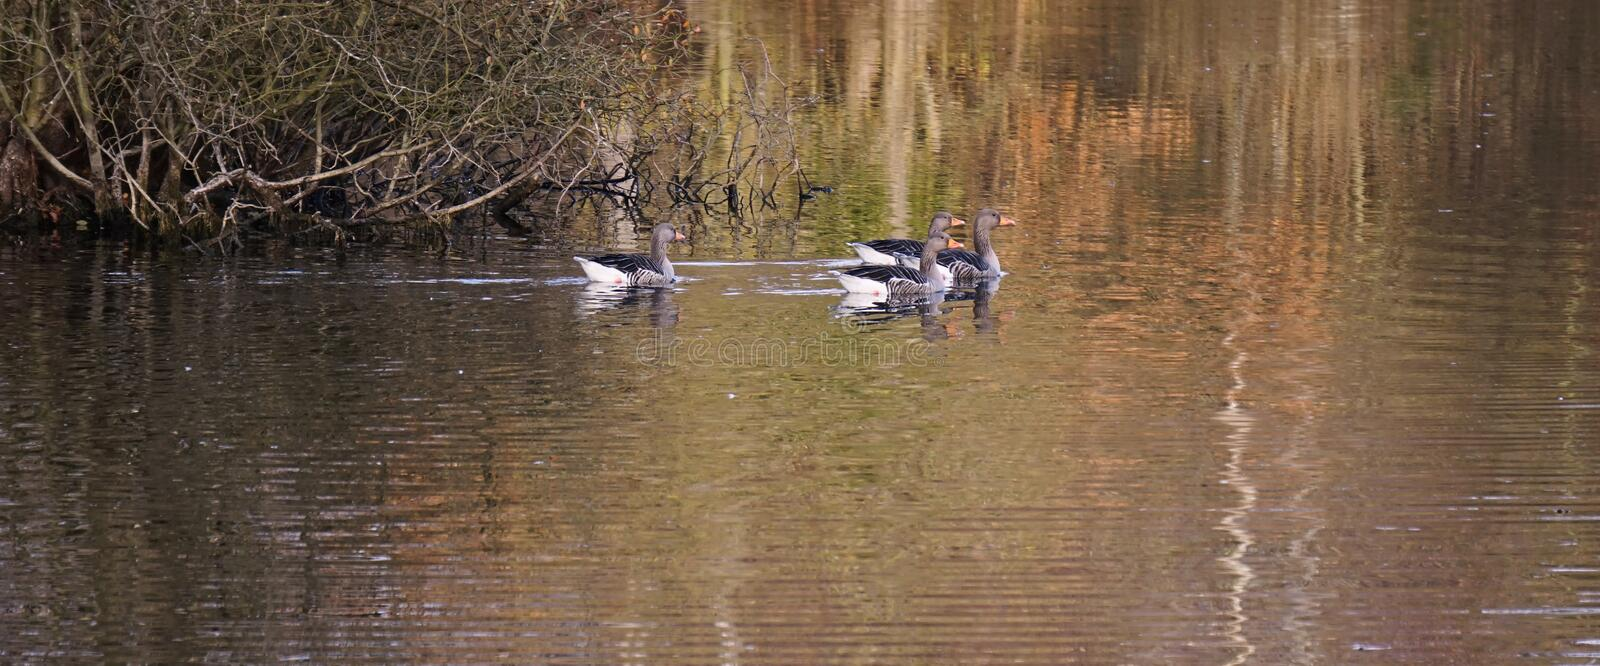 Greylag geese. stock images